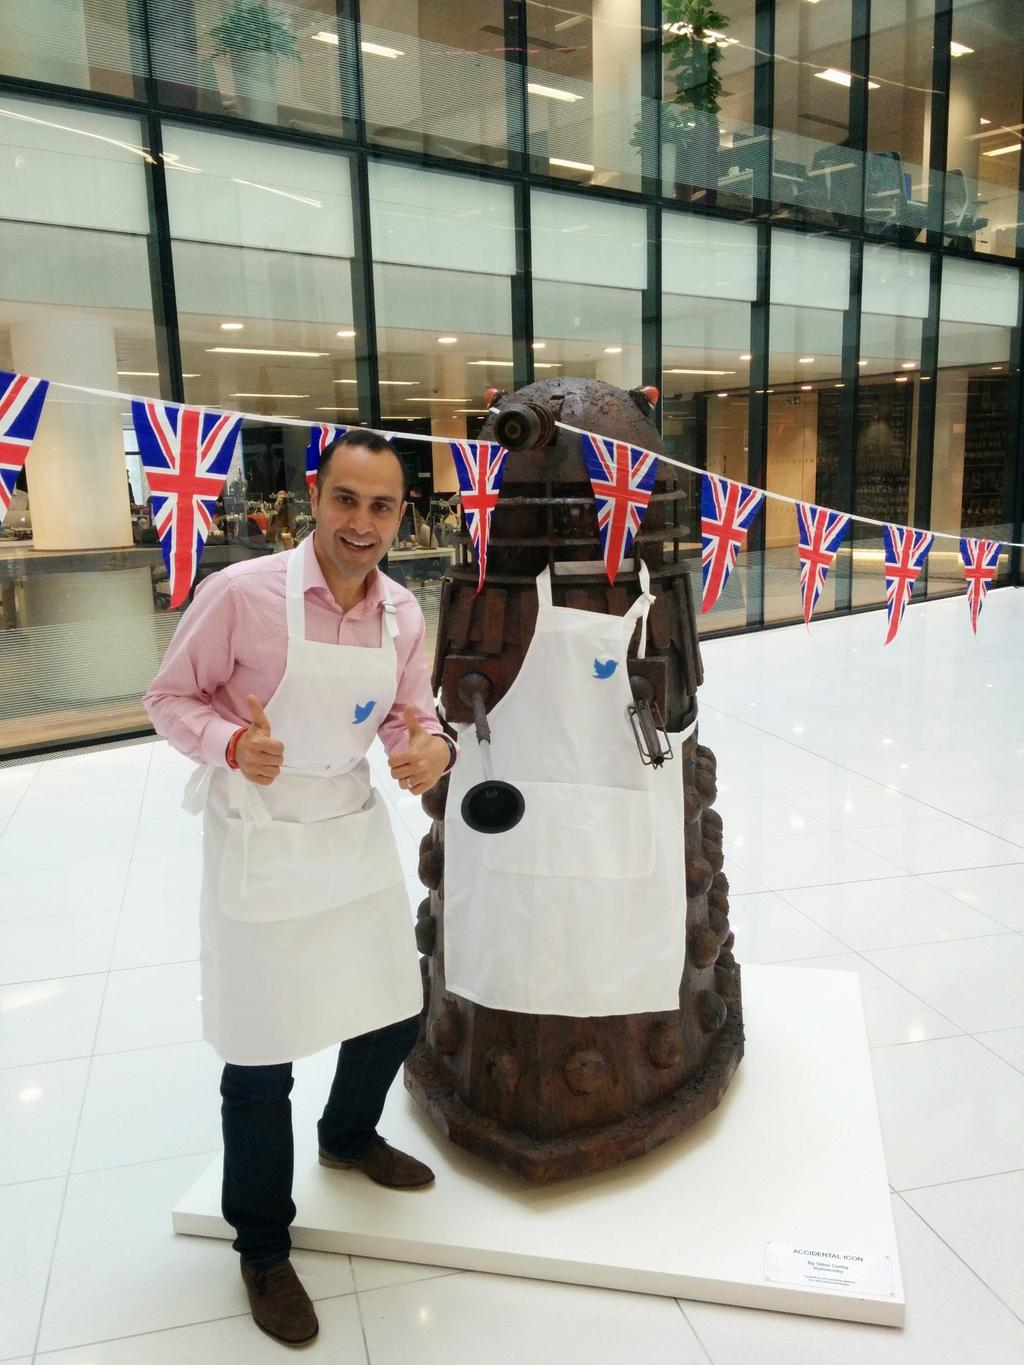 RT @brucedaisley: We had Media Week Awards judging today. The theme was #GBBO. So obviously here's @DaraNasr with a Dalek. http://t.co/KznB…